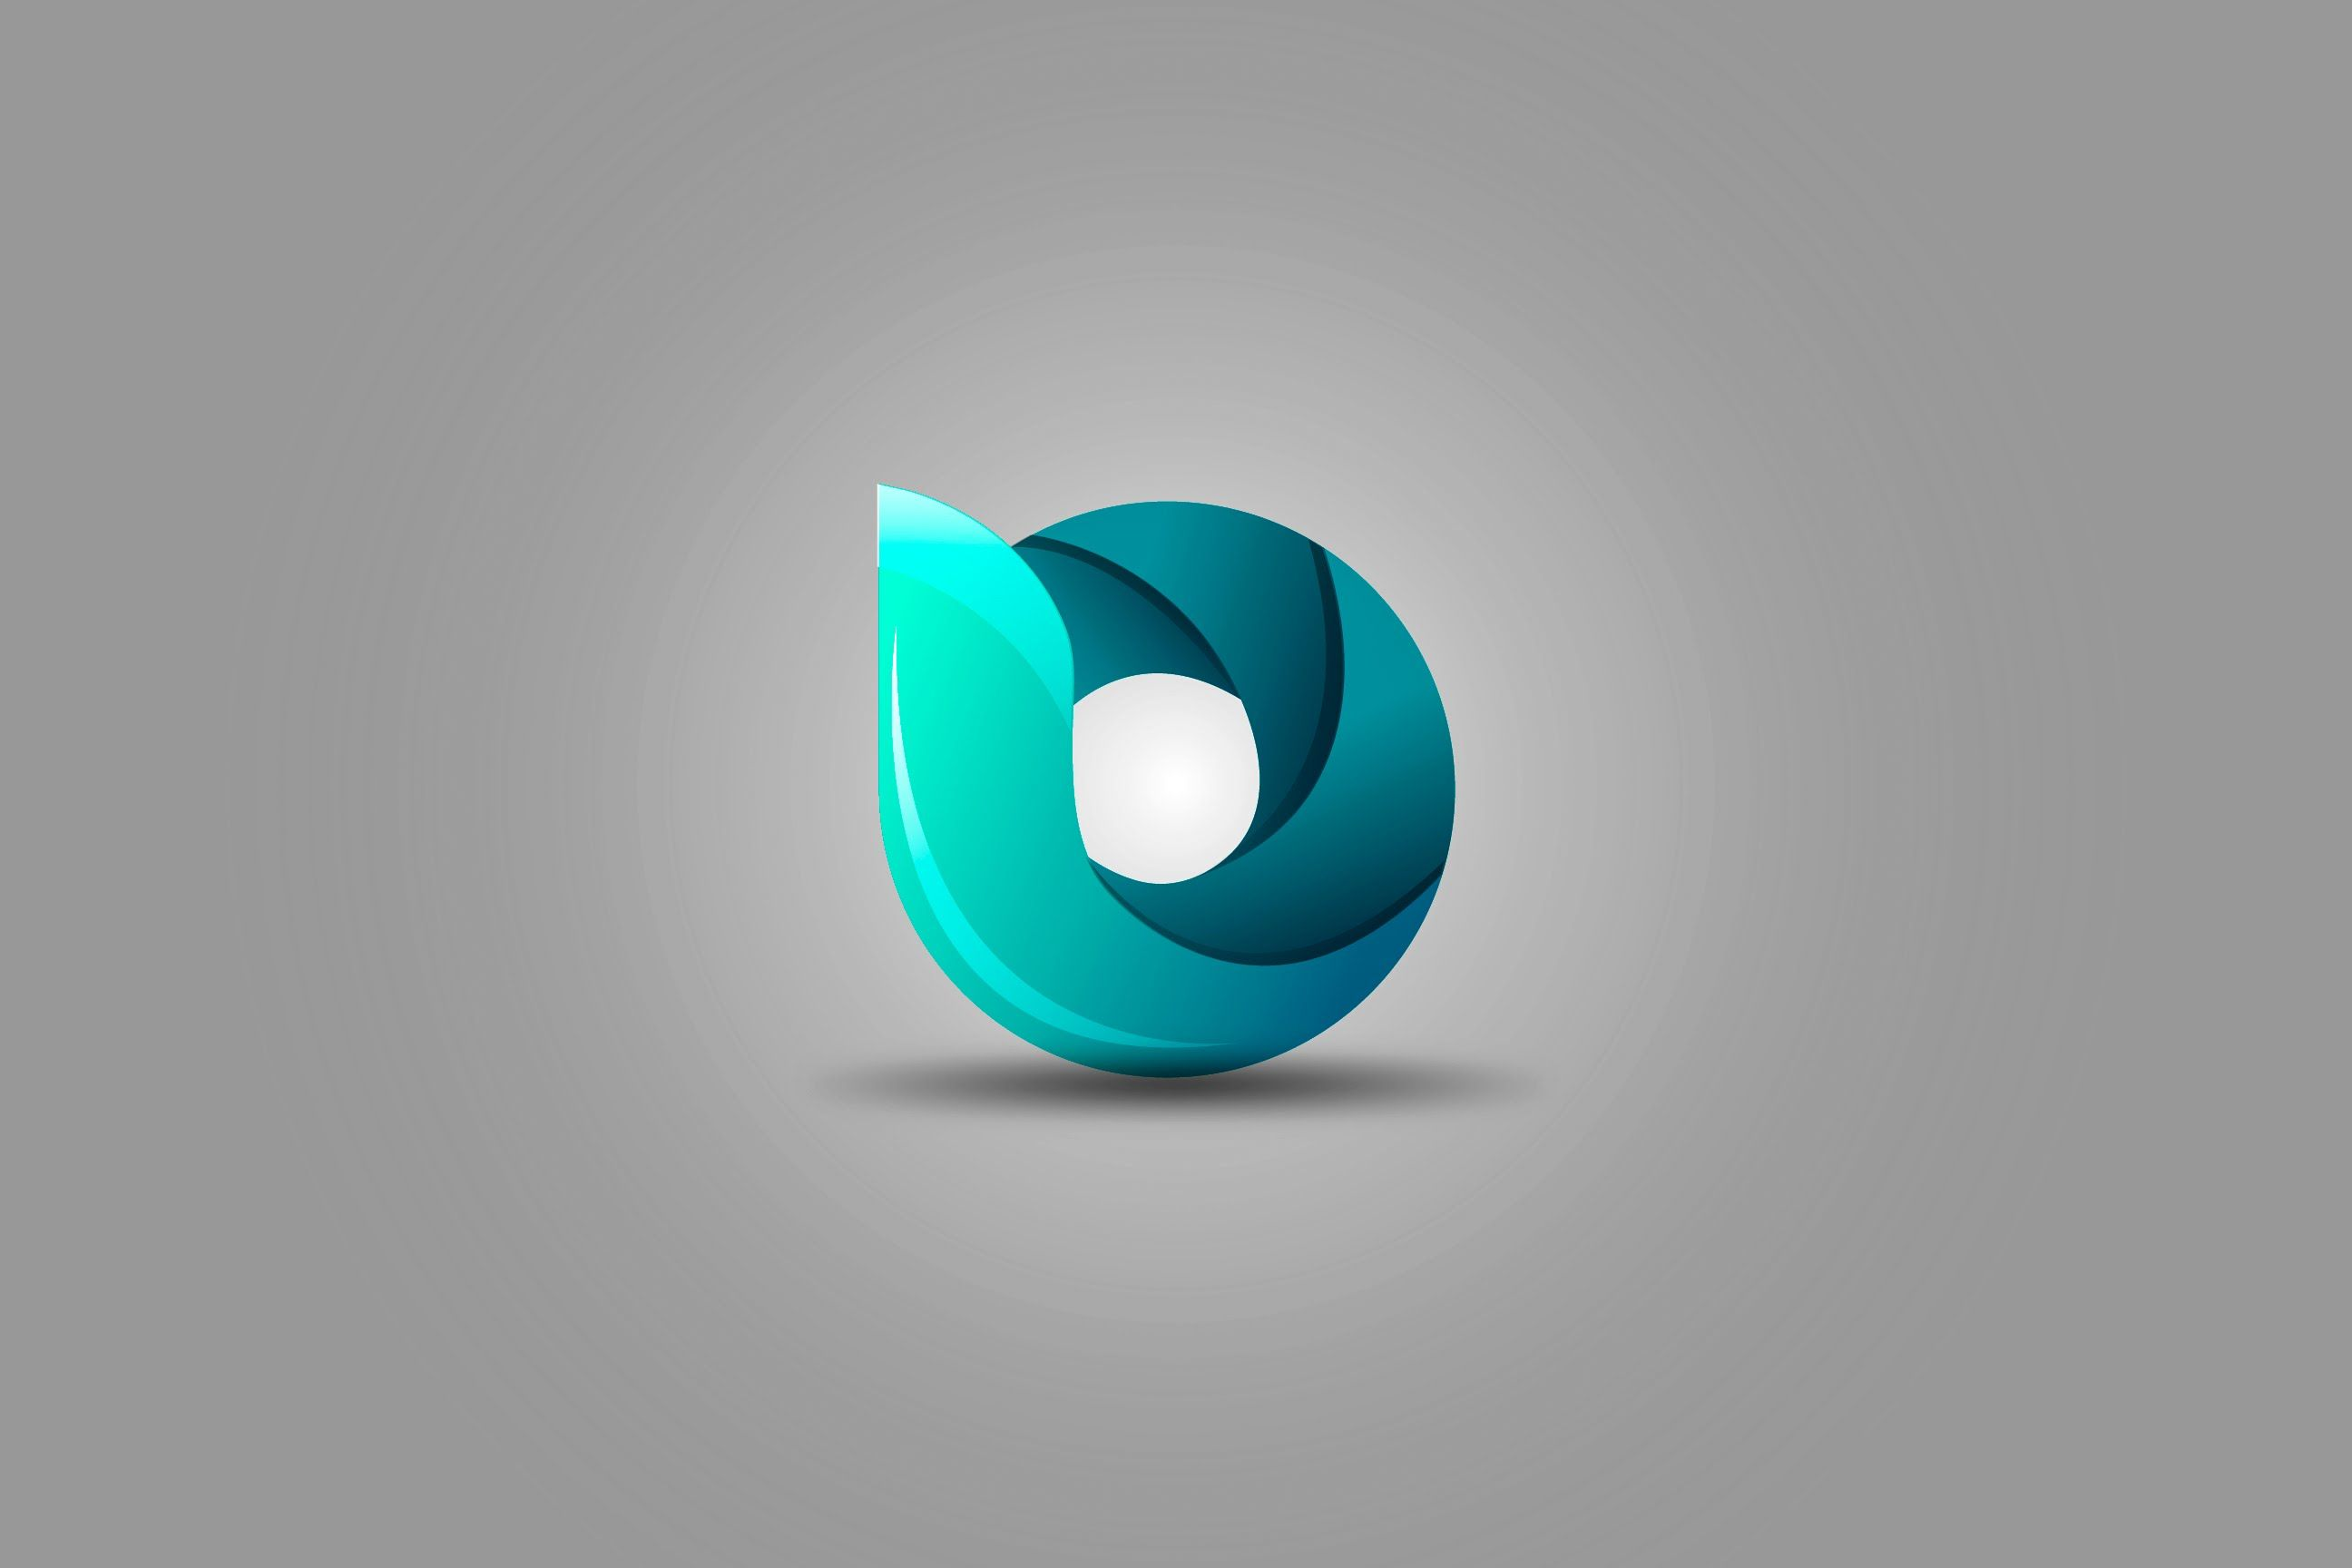 In This Illustrator Tutorial You Will Learnt To Create A 3d Logo Design Having A Nice Feel Of Glossy 3d Logo Design Logo Design Creative Logo Design Typography,Huawei Mate 10 Porsche Design Box